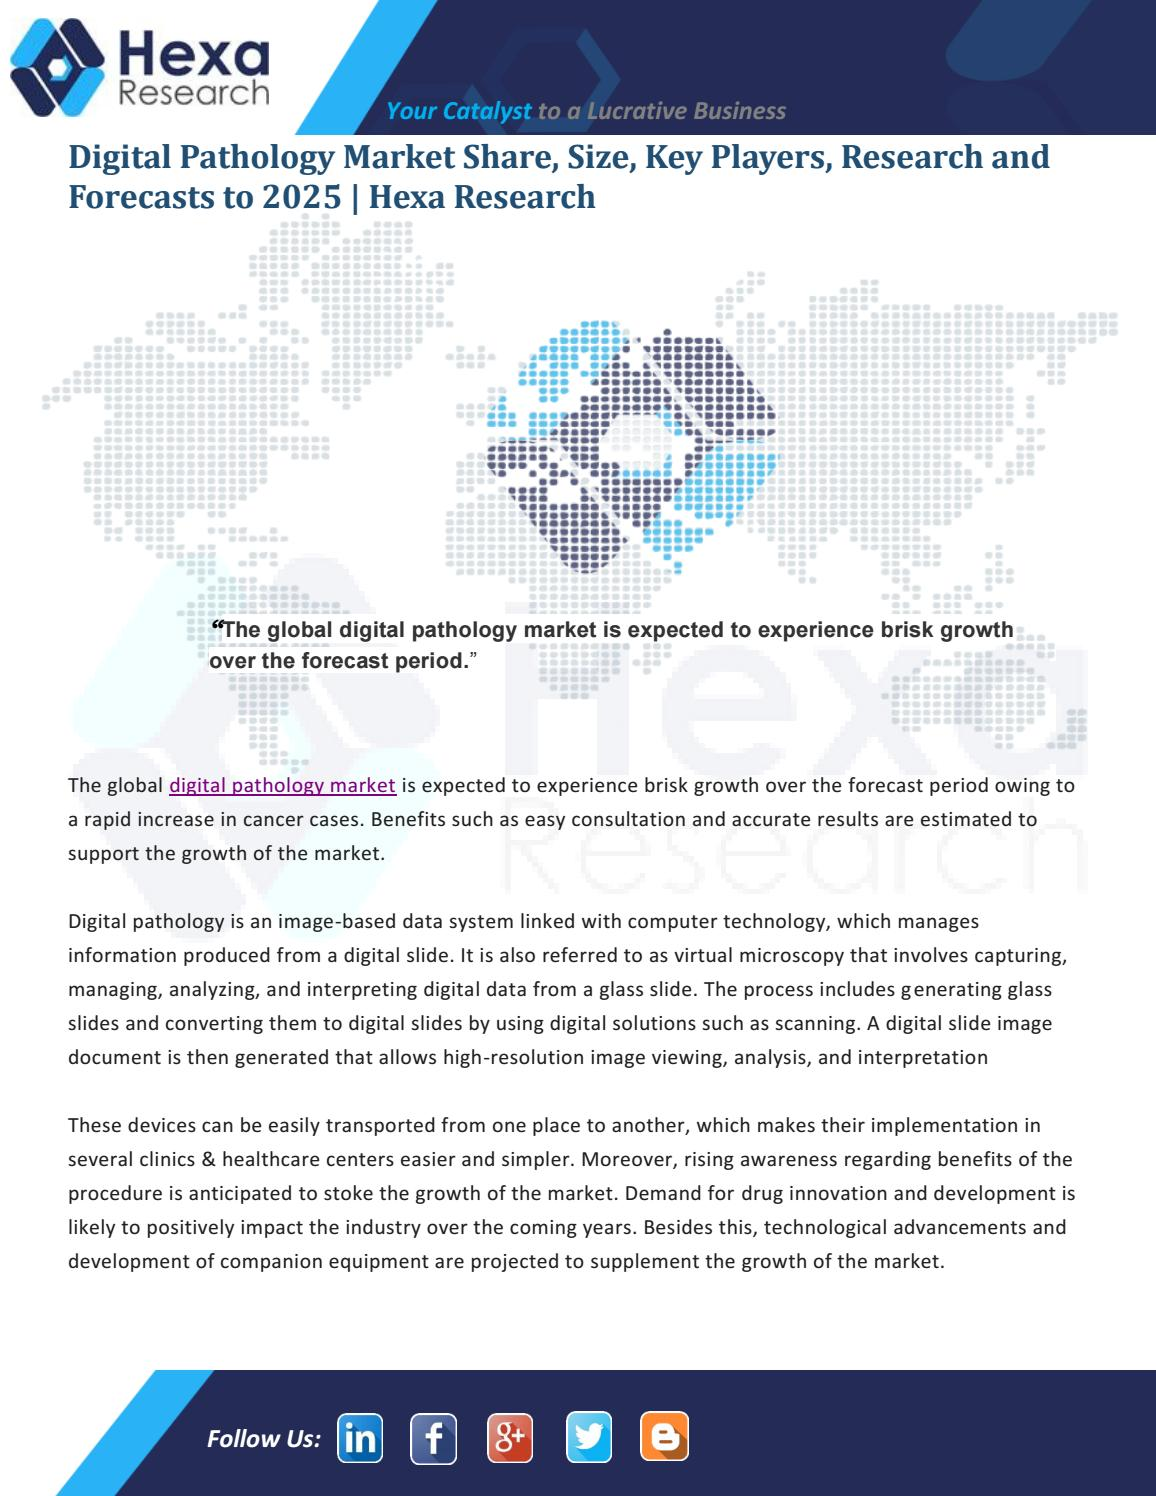 Global Digital Pathology Market Set to Grow Exponentially